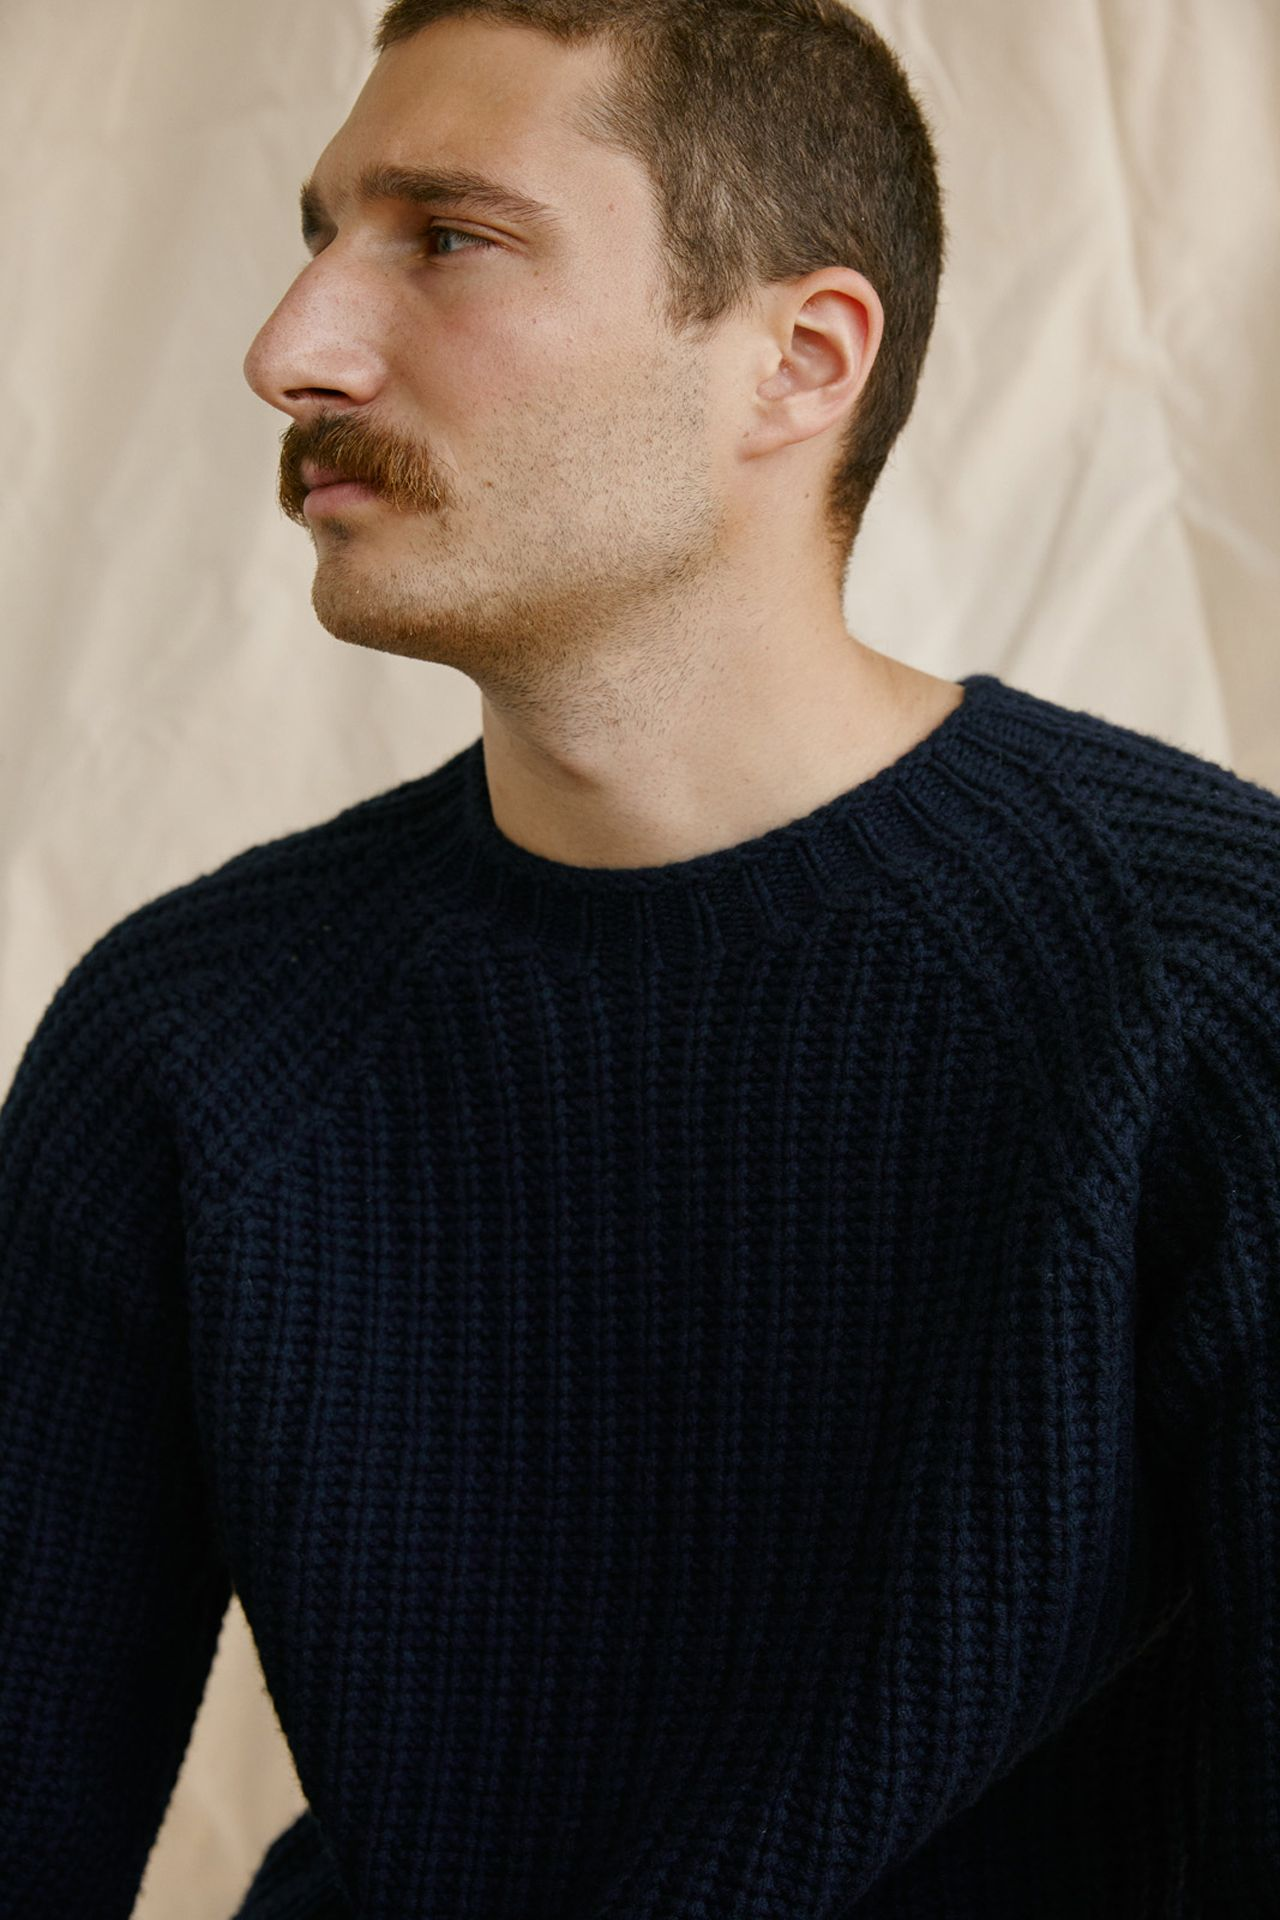 Premiere Adresse high fashion shop photographs by Kelly Jacob of man model wearing cream knit sweater